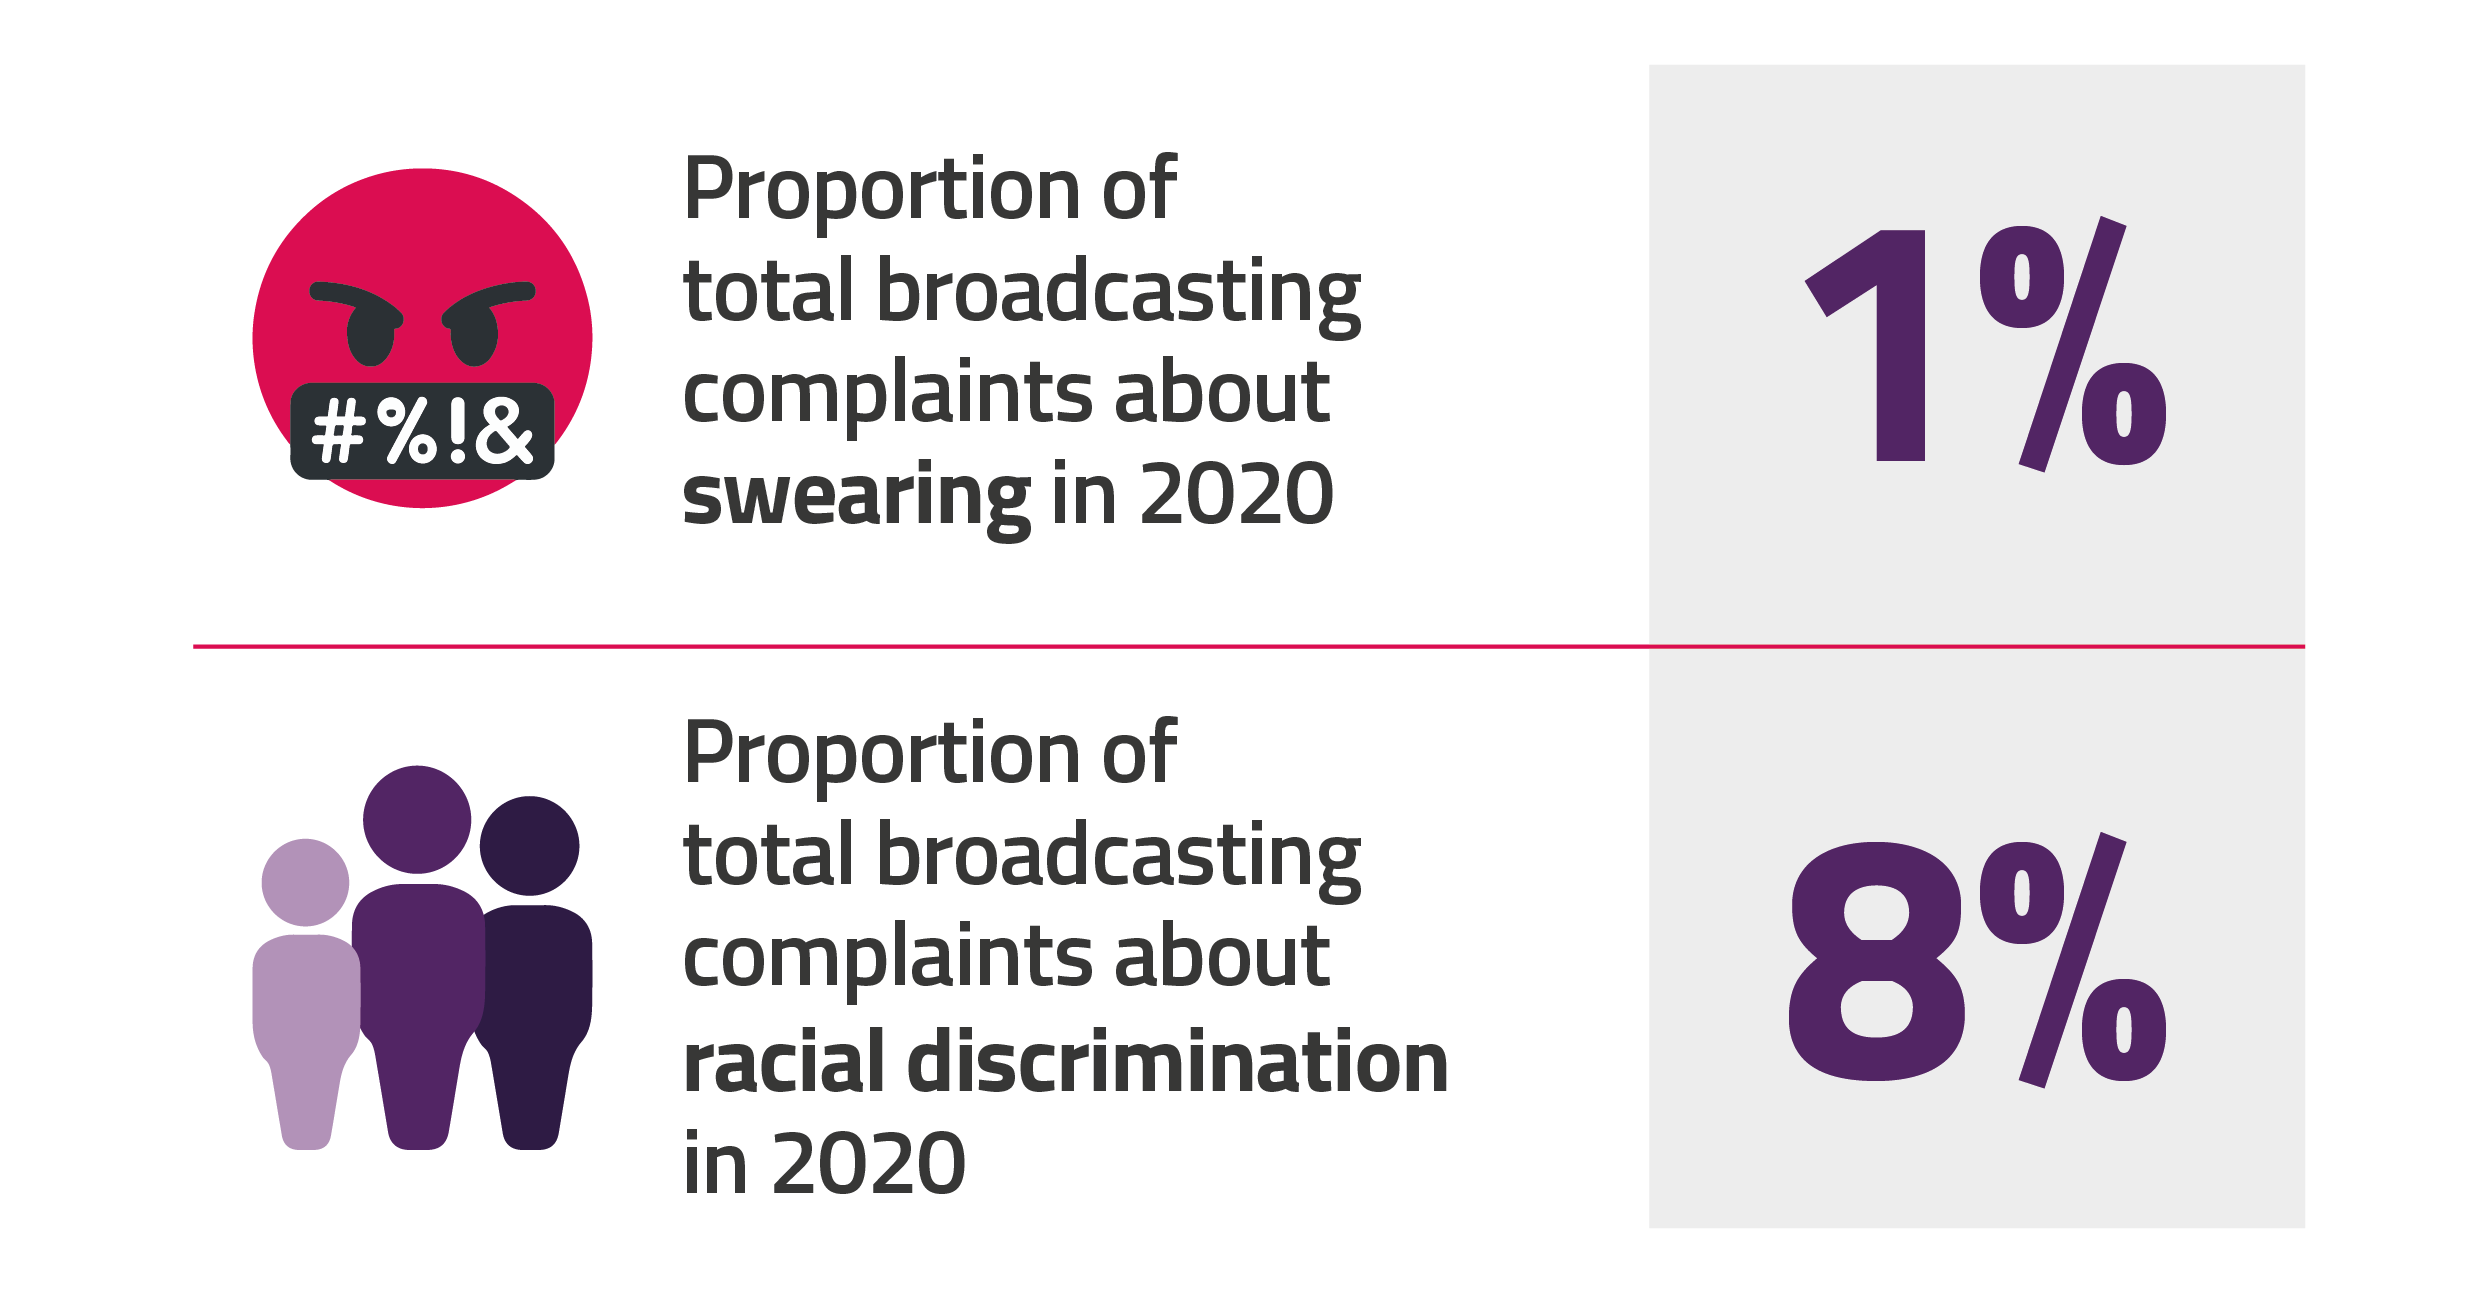 In 2020, only 1% of total broadcasting complaints were about swearing. 8% of complaints were about racial discrimination.